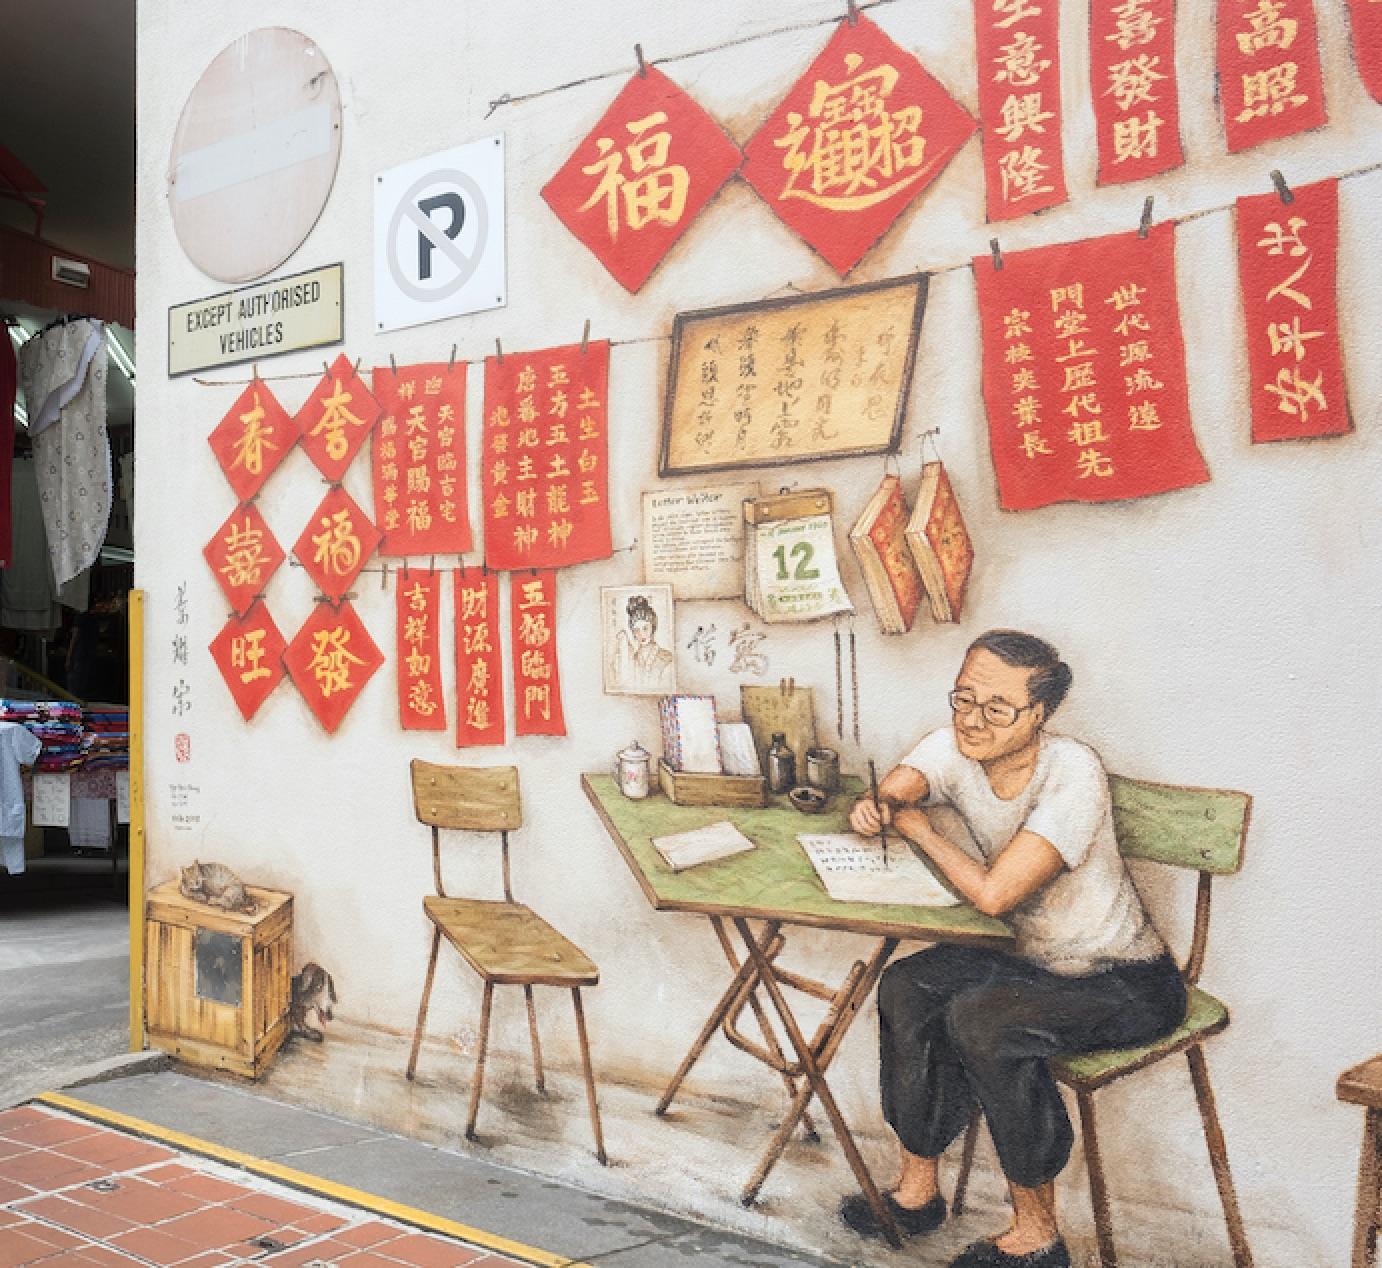 private car tours singapore to check out the street murals